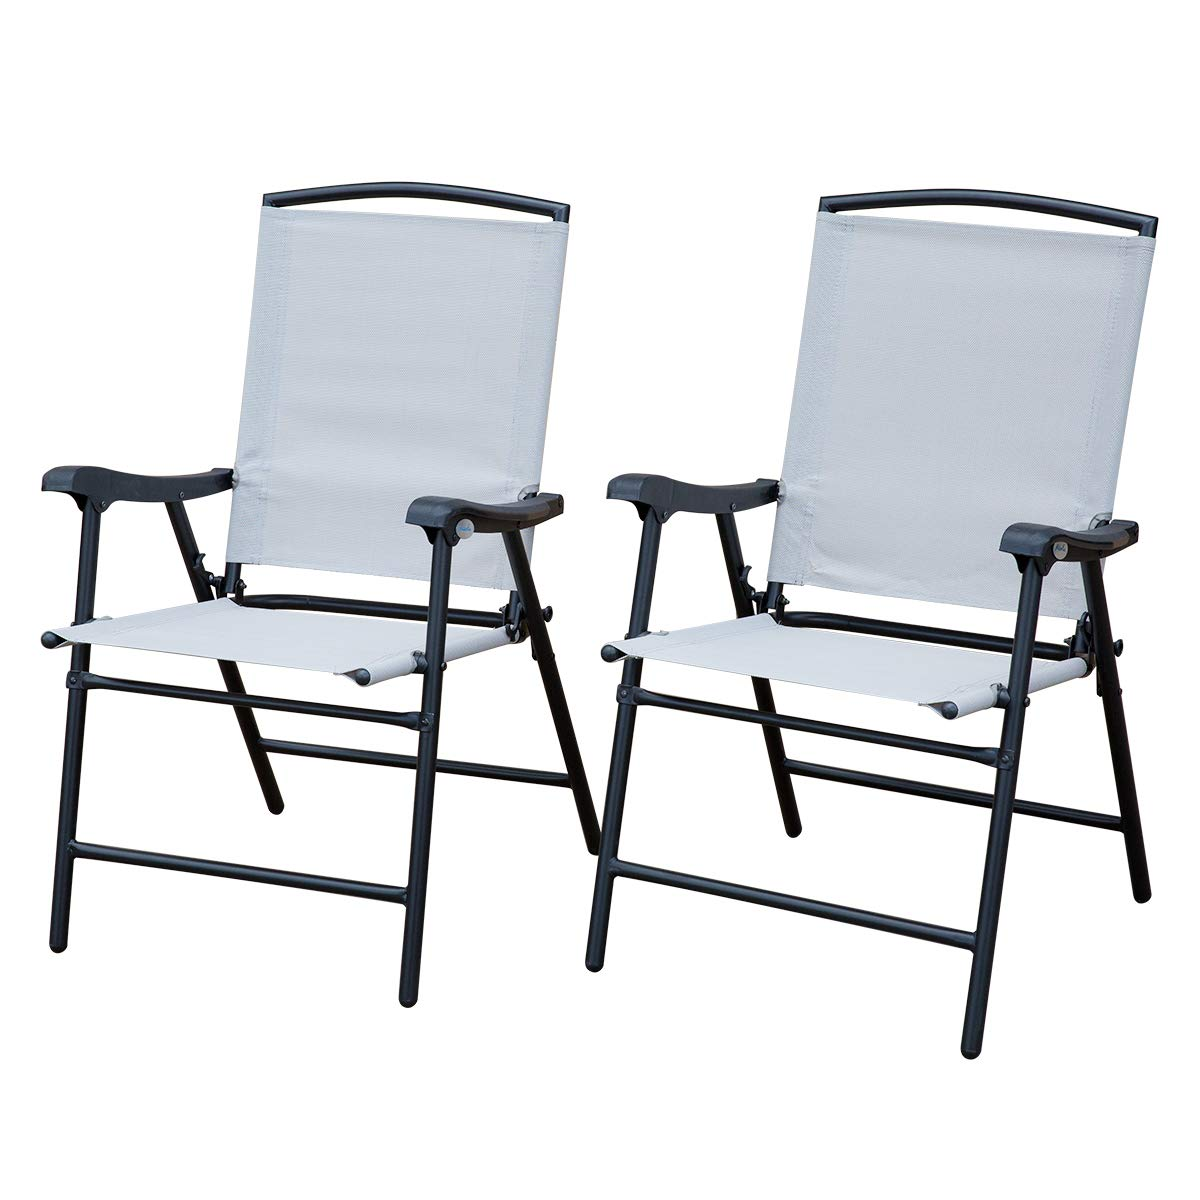 Amazing Sunlife Outdoor Folding Lawn Chairs With Steel Frame Portable For Lawn Garden Patio Beach Set Of 2 Black Frame Beige Fabric Theyellowbook Wood Chair Design Ideas Theyellowbookinfo